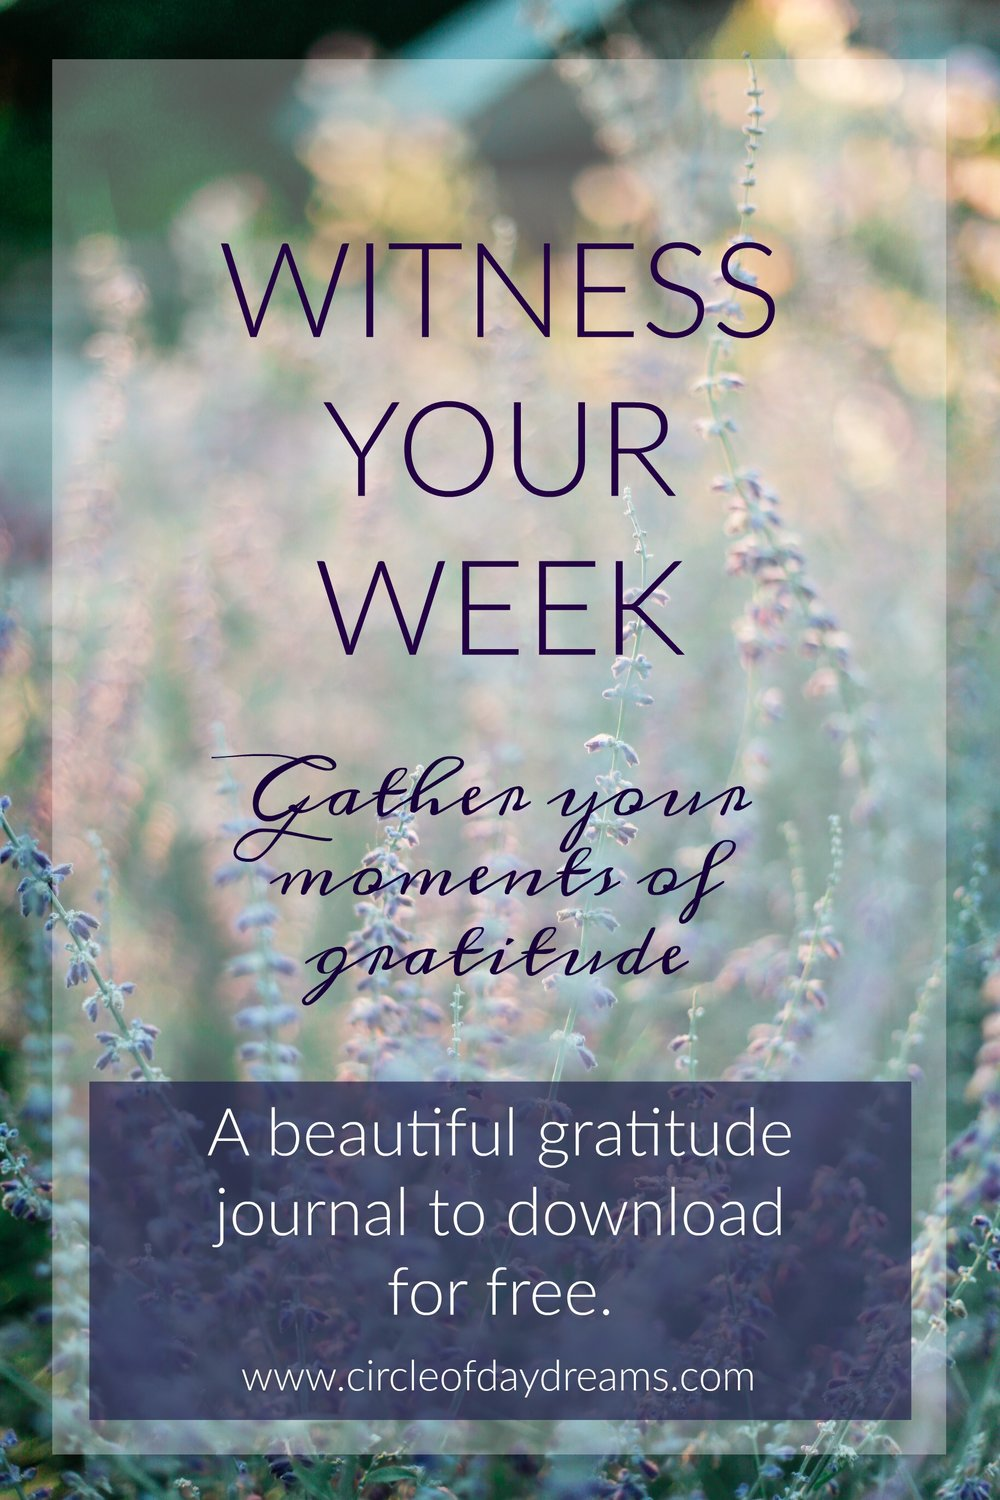 Witness your Week. A free gratitude journal download from Circle of Daydreams. www.circleofdaydreams.com